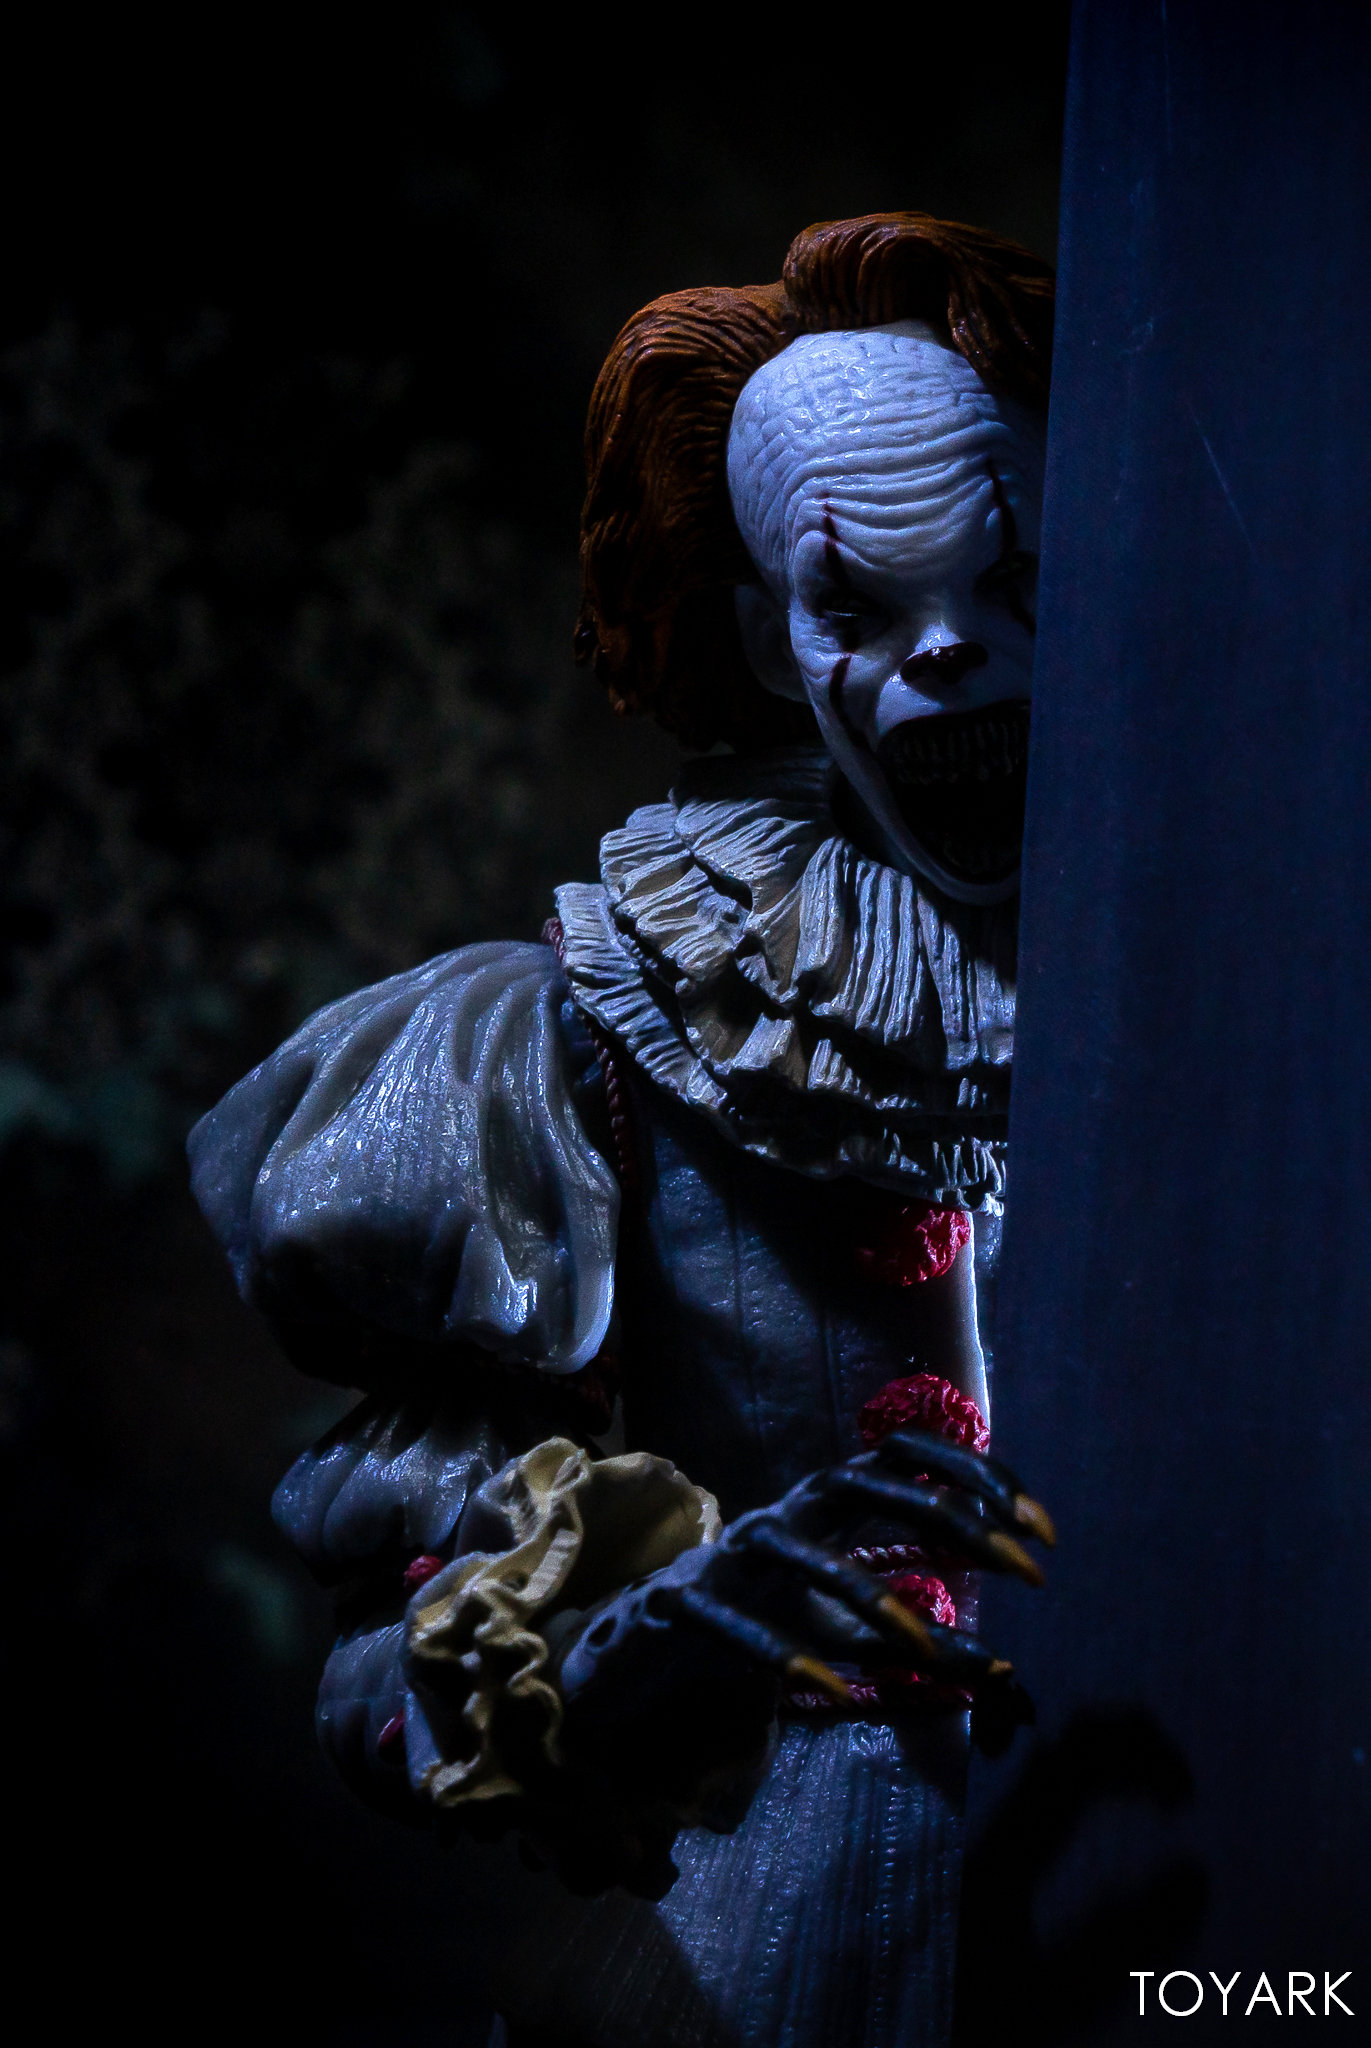 https://news.toyark.com/wp-content/uploads/sites/4/2019/03/Well-House-Pennywise-Gallery-038.jpg